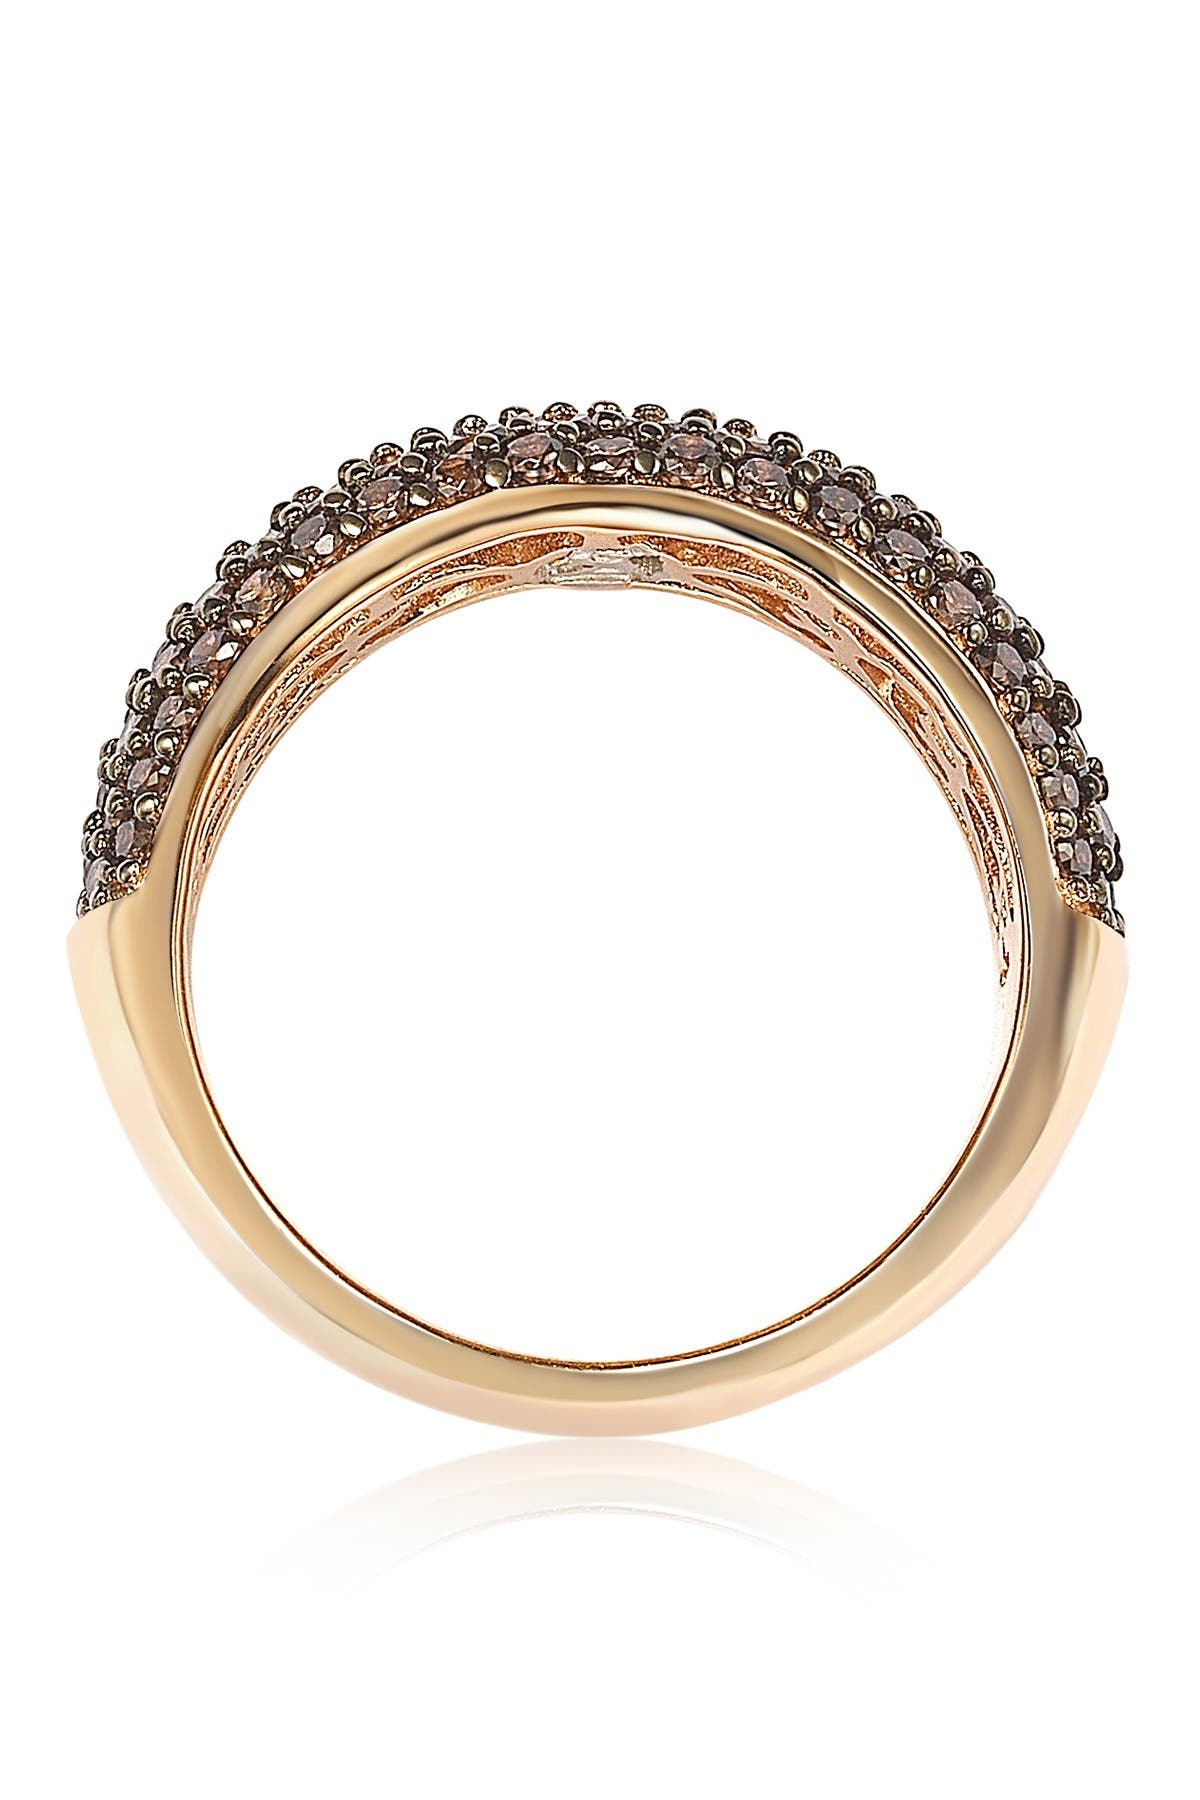 Image of Suzy Levian Rose-Tone Sterling Silver Pave Chocolate CZ Eternity Band Ring